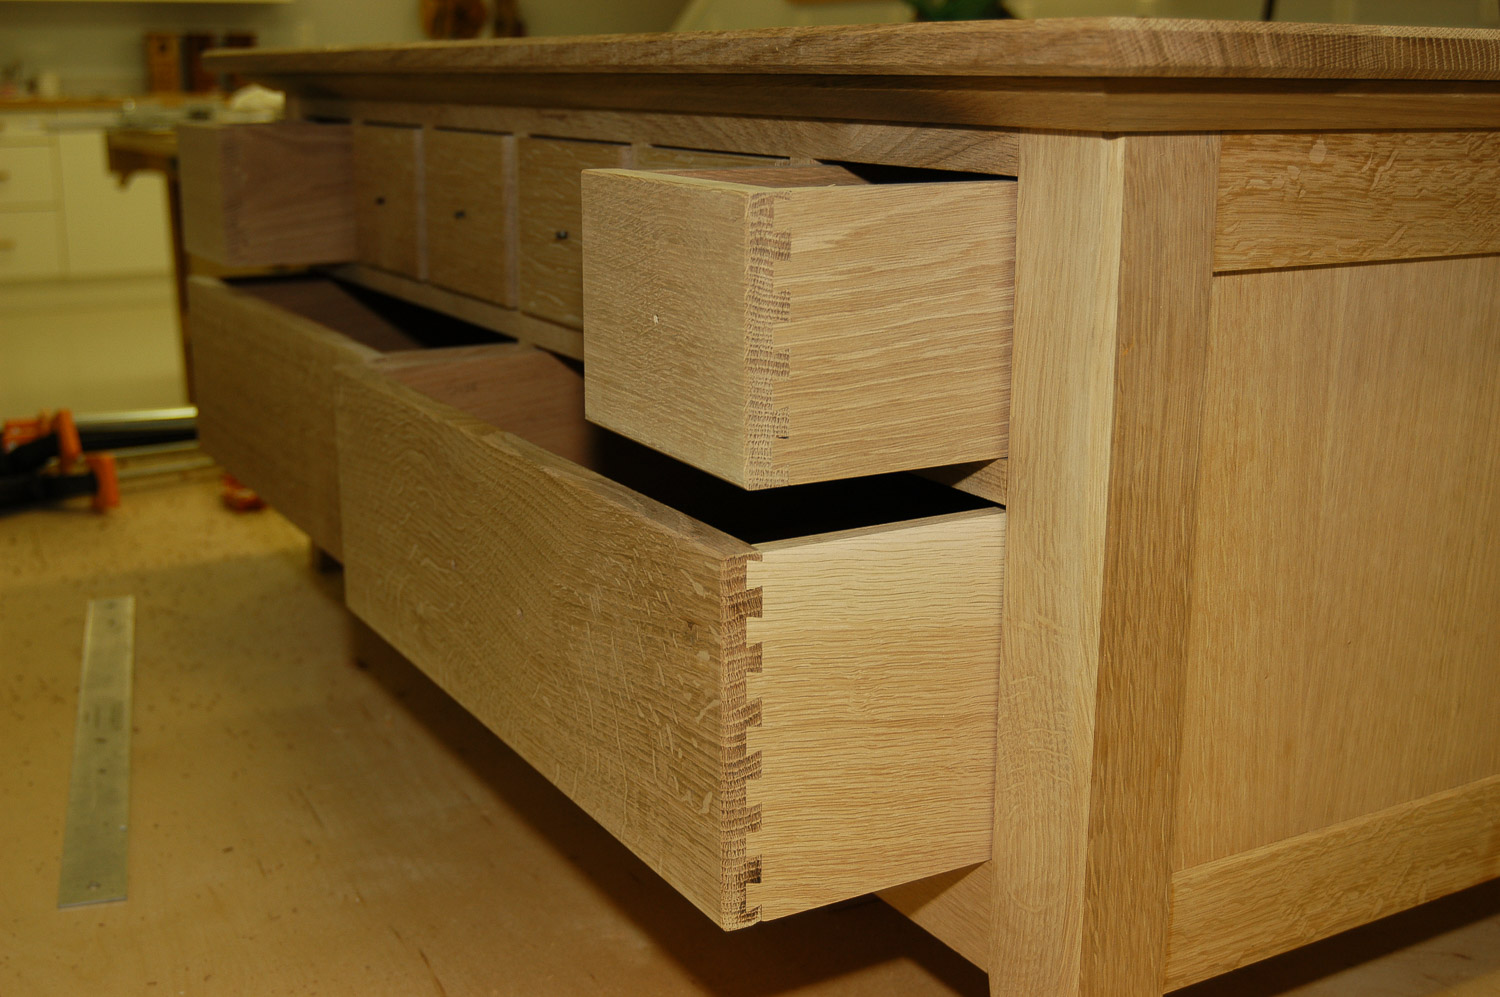 Coffee table under construction